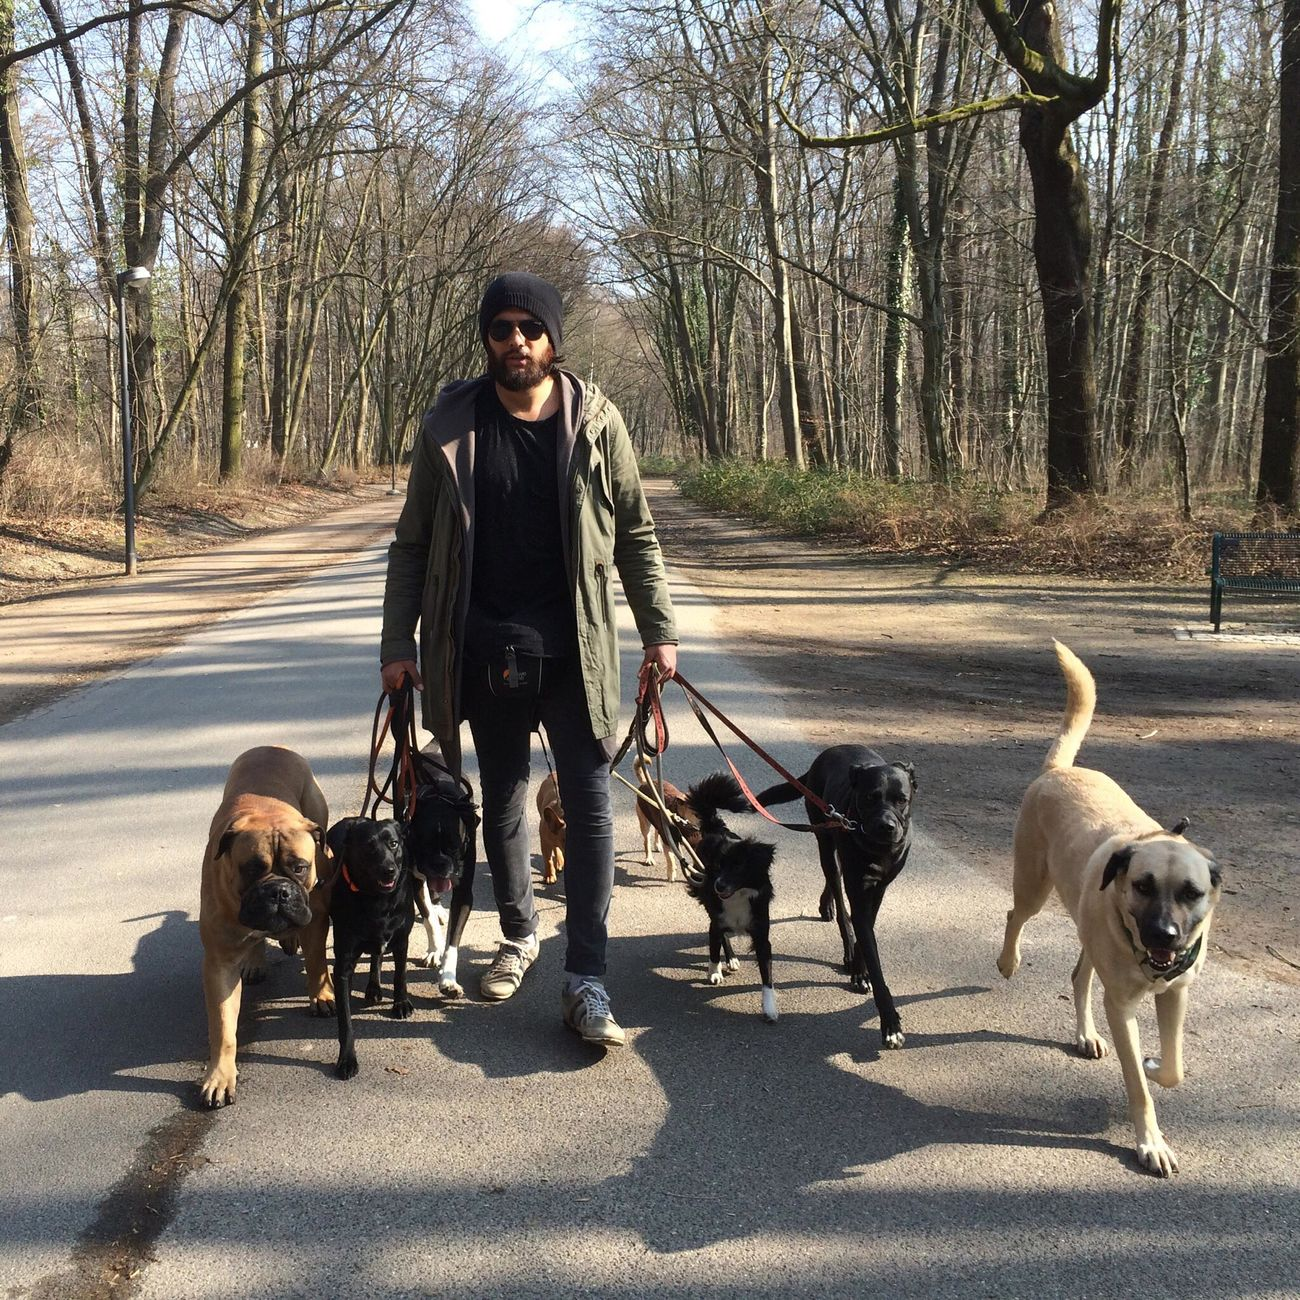 Snap a Stranger Dog Pets Domestic Animals Pet Leash One Person Pet Owner Real People A Stranger Walk Walking Around Dog Walker On My Way To Work Enjoy The New Normal Adapted To The City in Stadtwald  Köln Germany